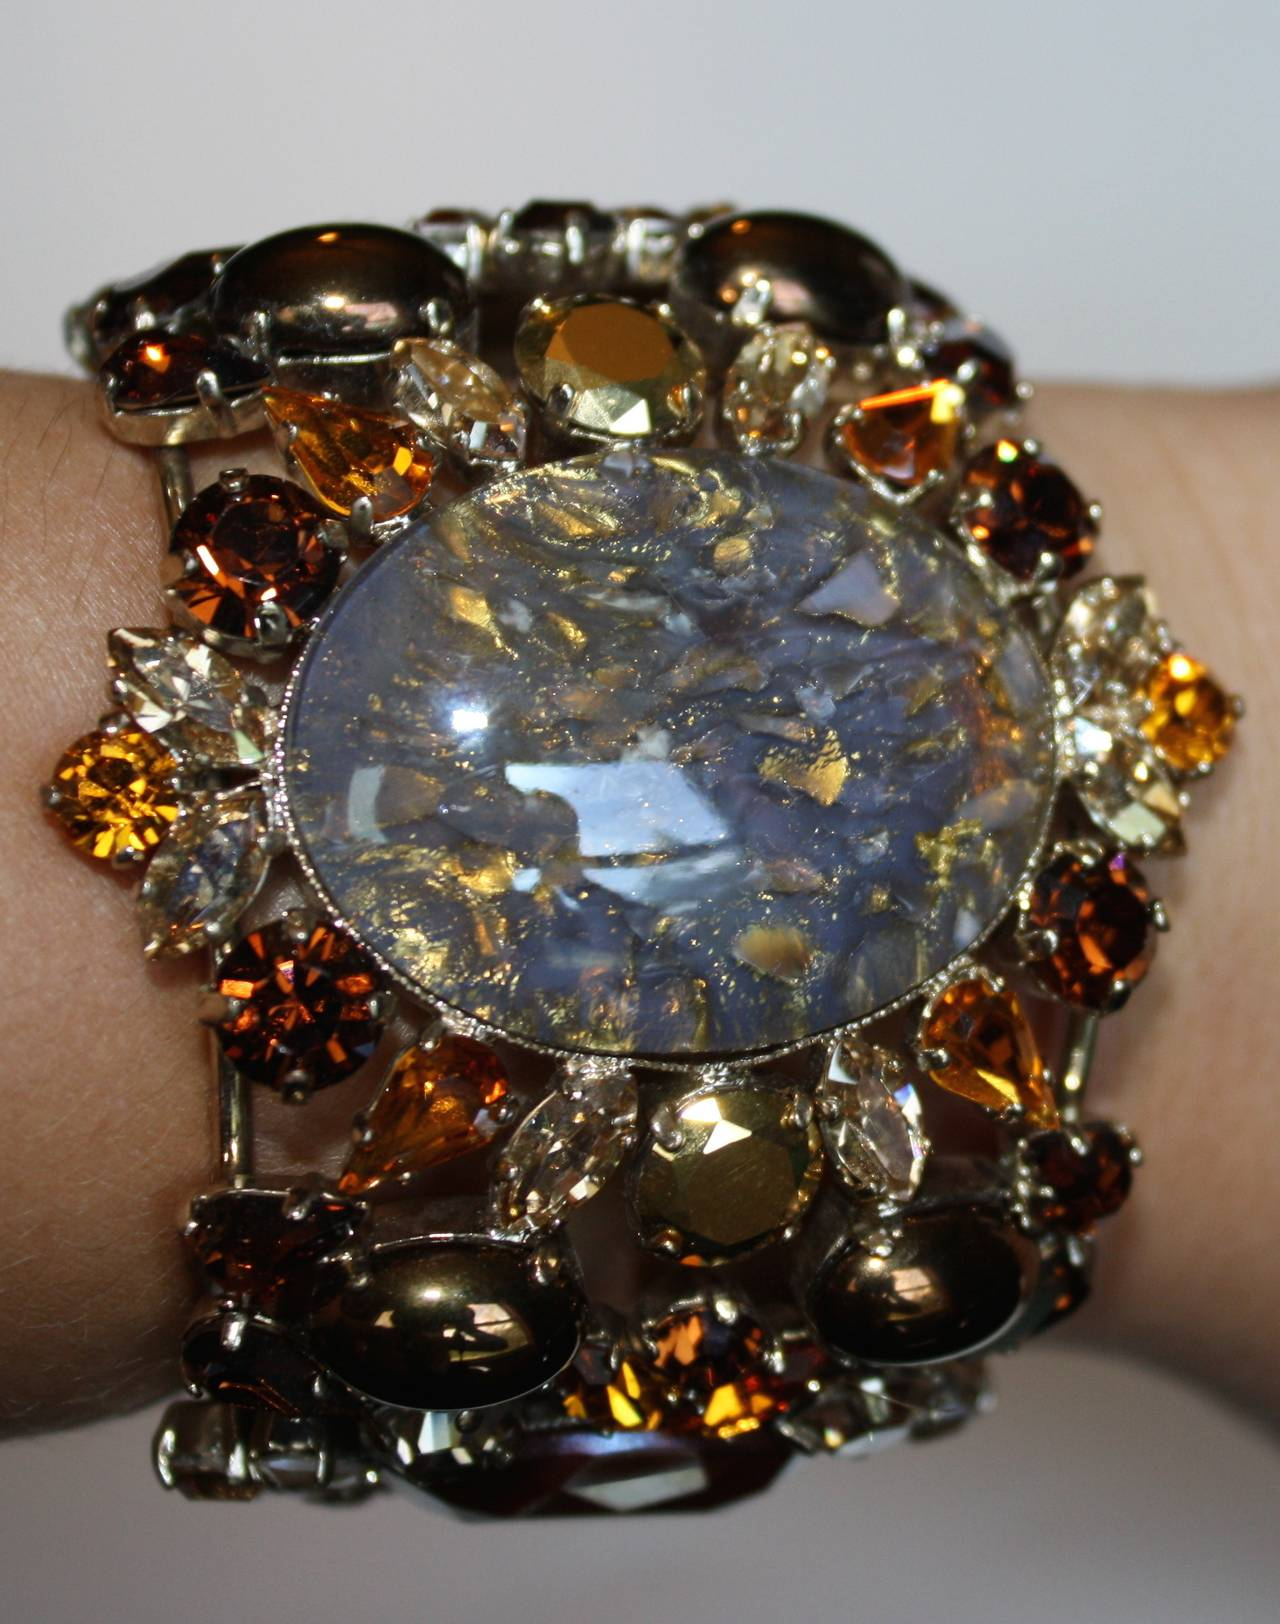 Amber tone cuff bracelet from Philippe Ferrandis made with Swarovski crystals, glass cabochons, and gold plate. 